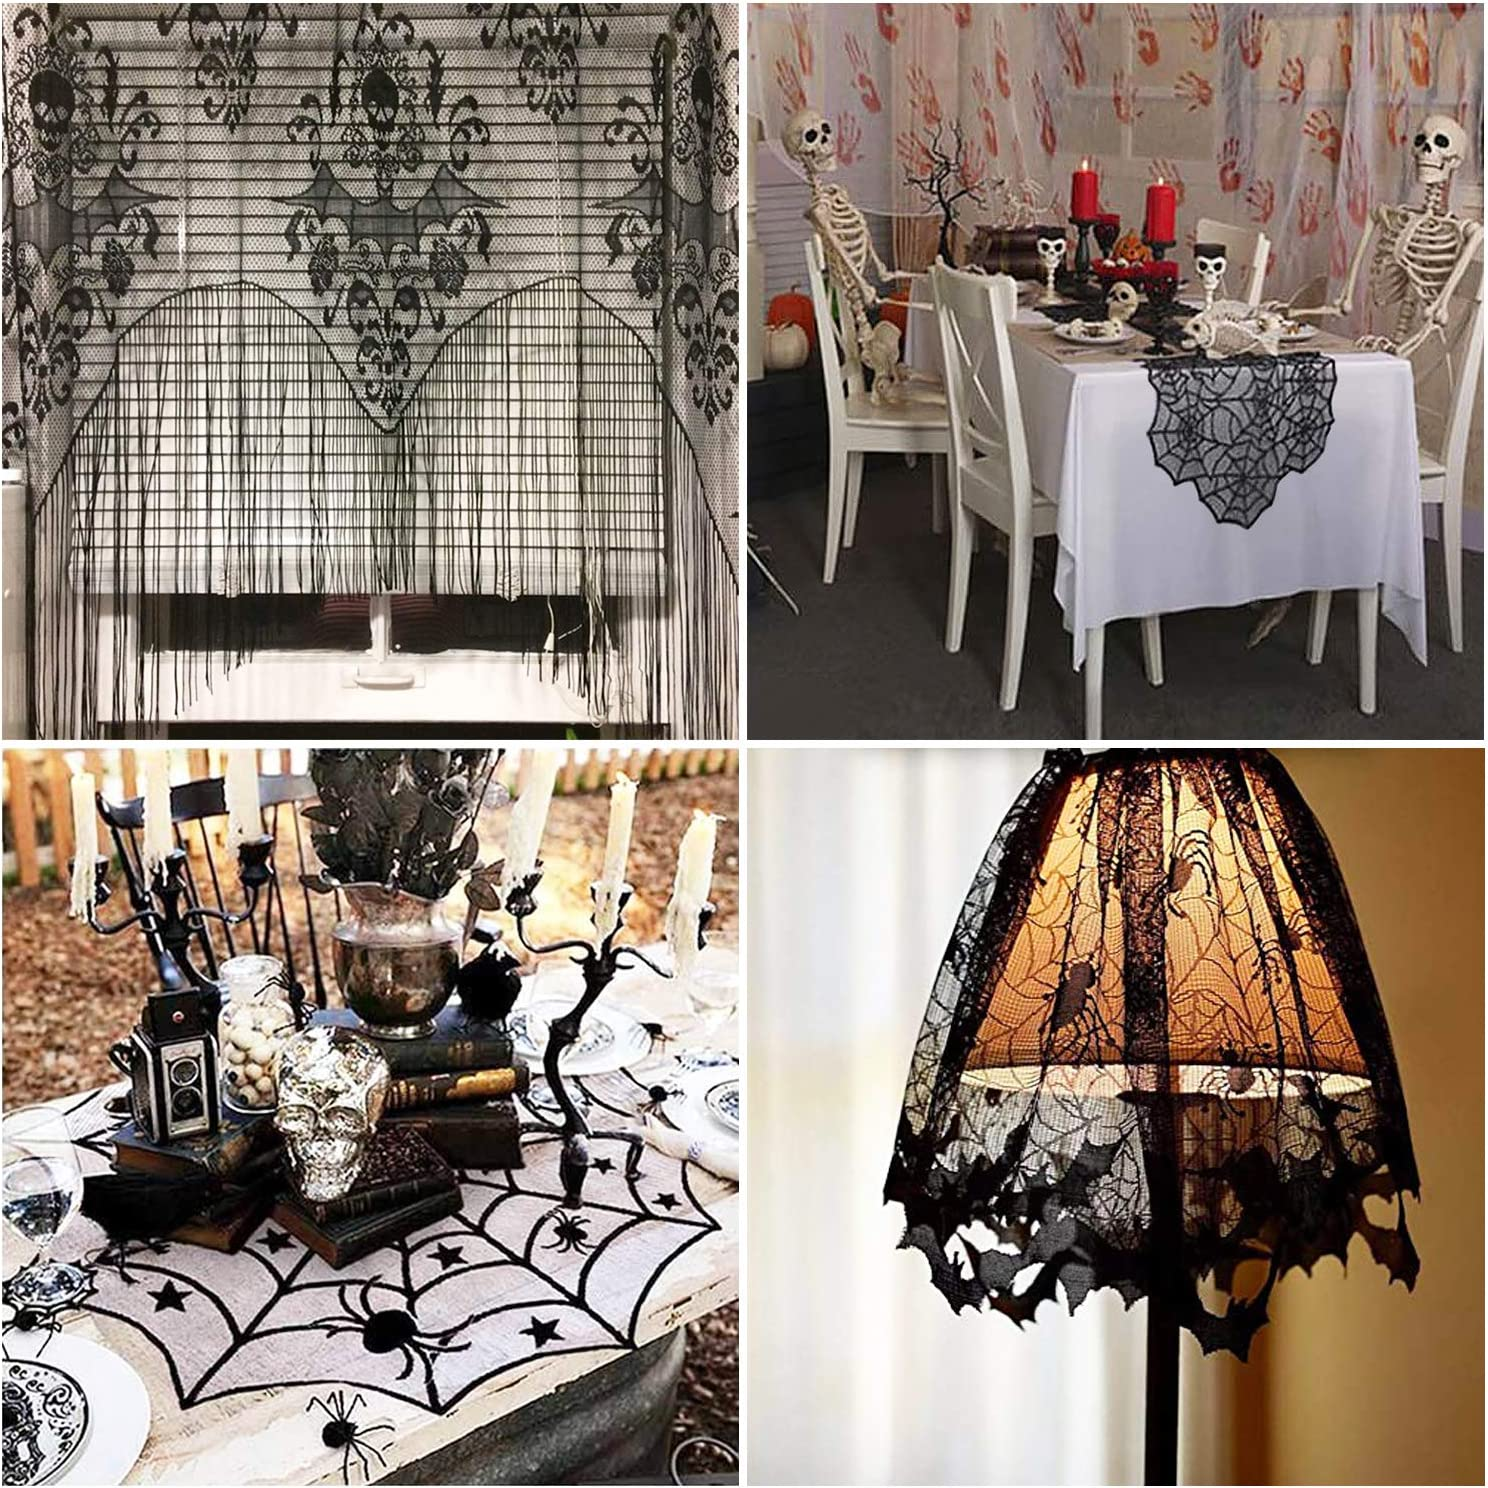 Black Tusenpy 4 Pieces Halloween Spider Web Tablecloth,Spider web Lace Rectangular Tablecloth,Round Lace Table Cover,Halloween Bat Lamp Shade and Translucent Fireplace Curtain